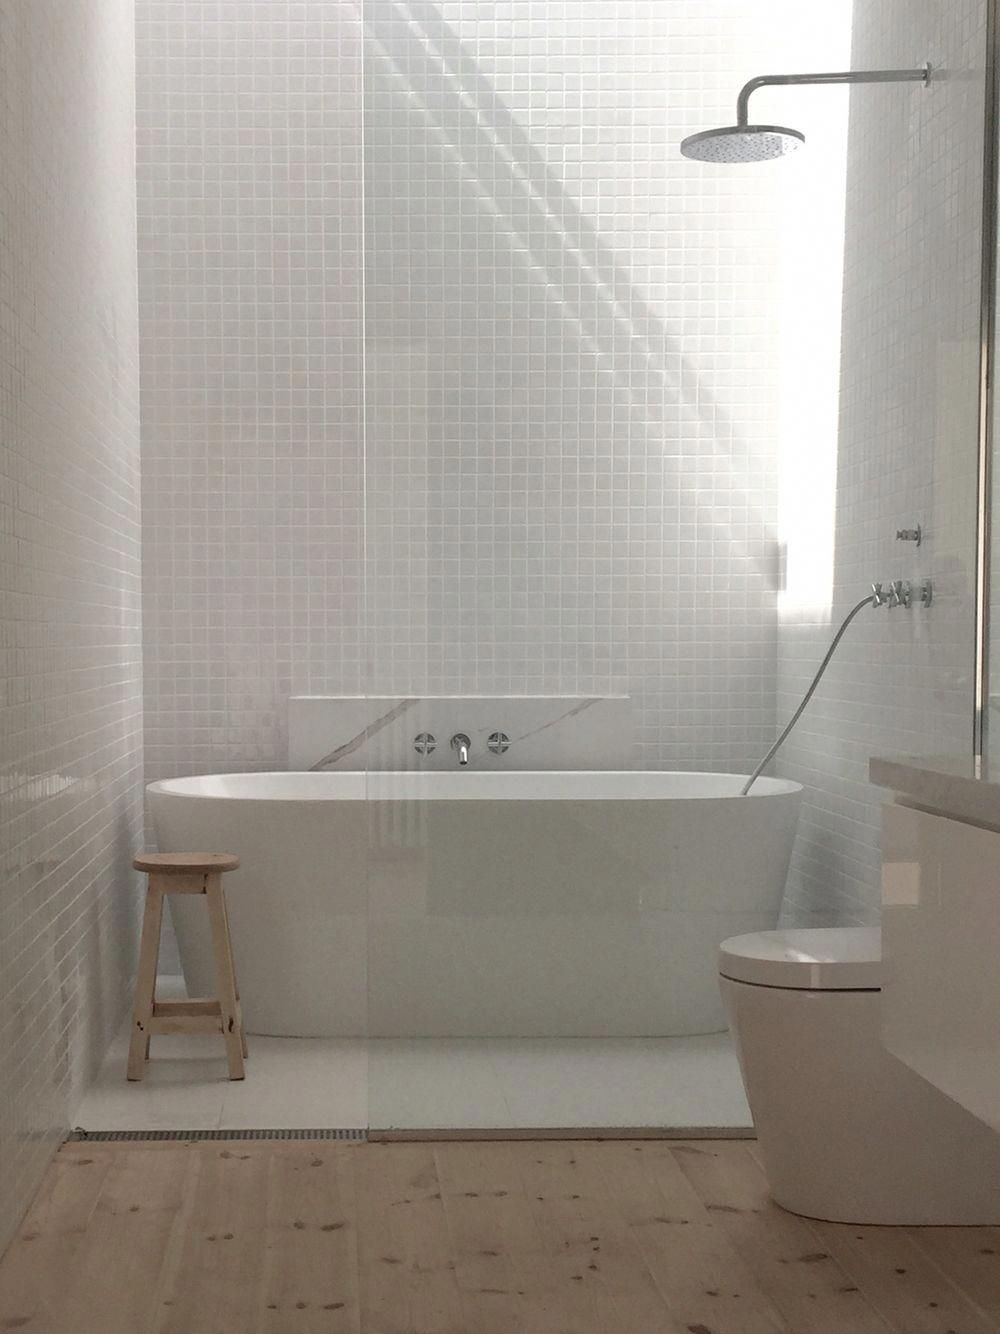 Countertops For Bathrooms And Toilets In 2020 Bathroom Layout